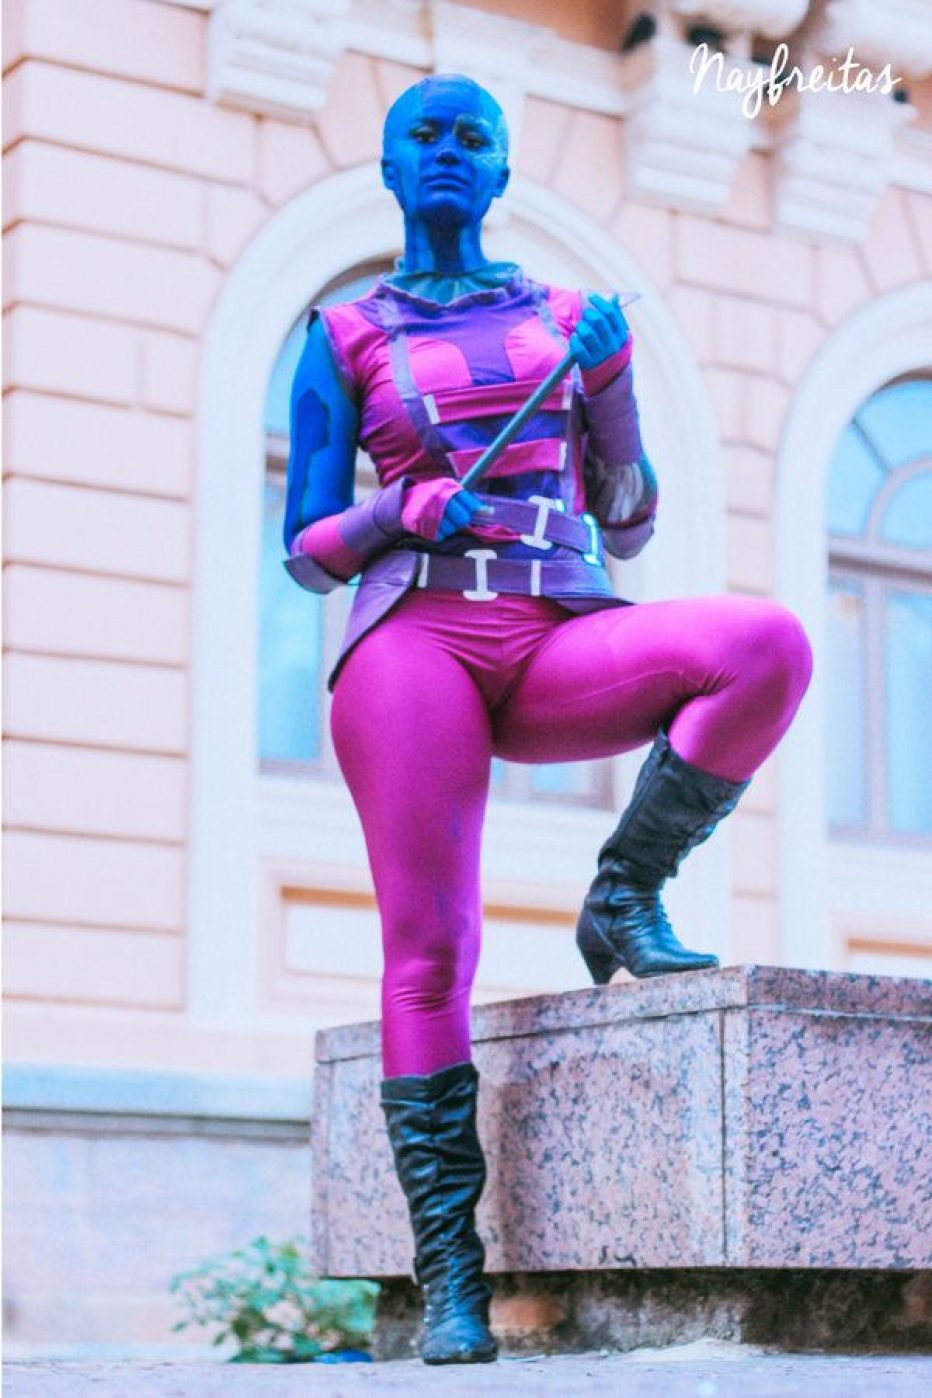 Guardians-of-the-Galaxy-Nebula-Cosplay-Gamers-Heroes-1.jpg